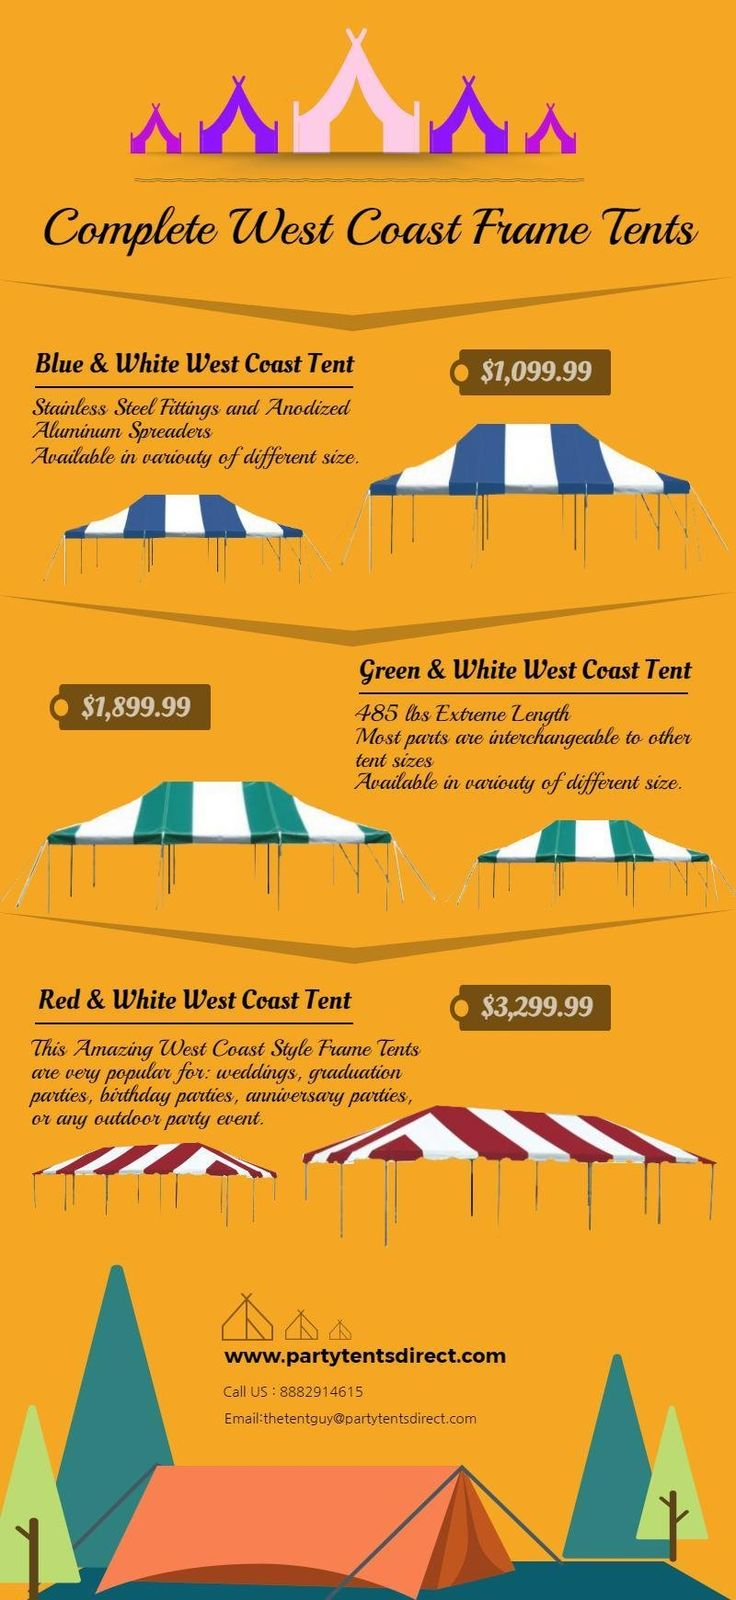 Complete West Coast Frame Tents For Sale #PartyTent #TentForSale #WestCoastTent